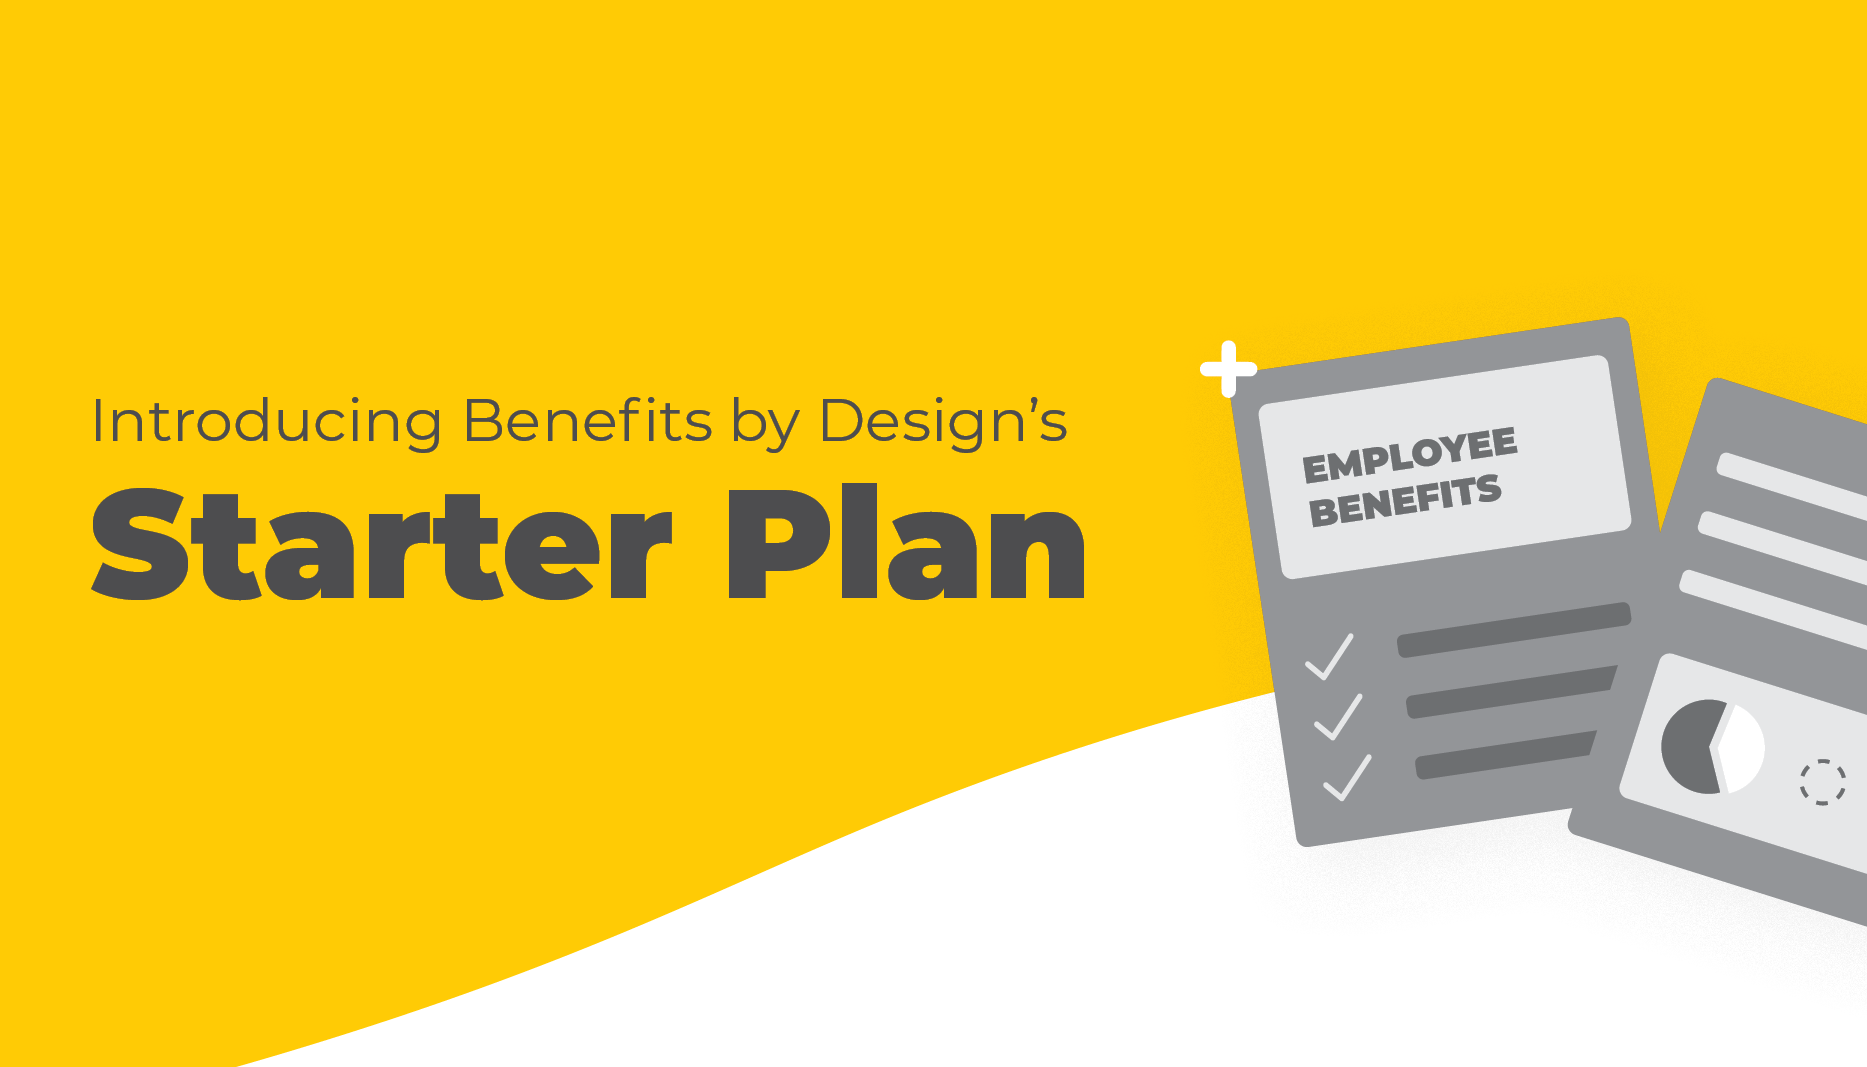 Introducing the BBD Starter Plan | Vector Image of Documents | Benefits by Design